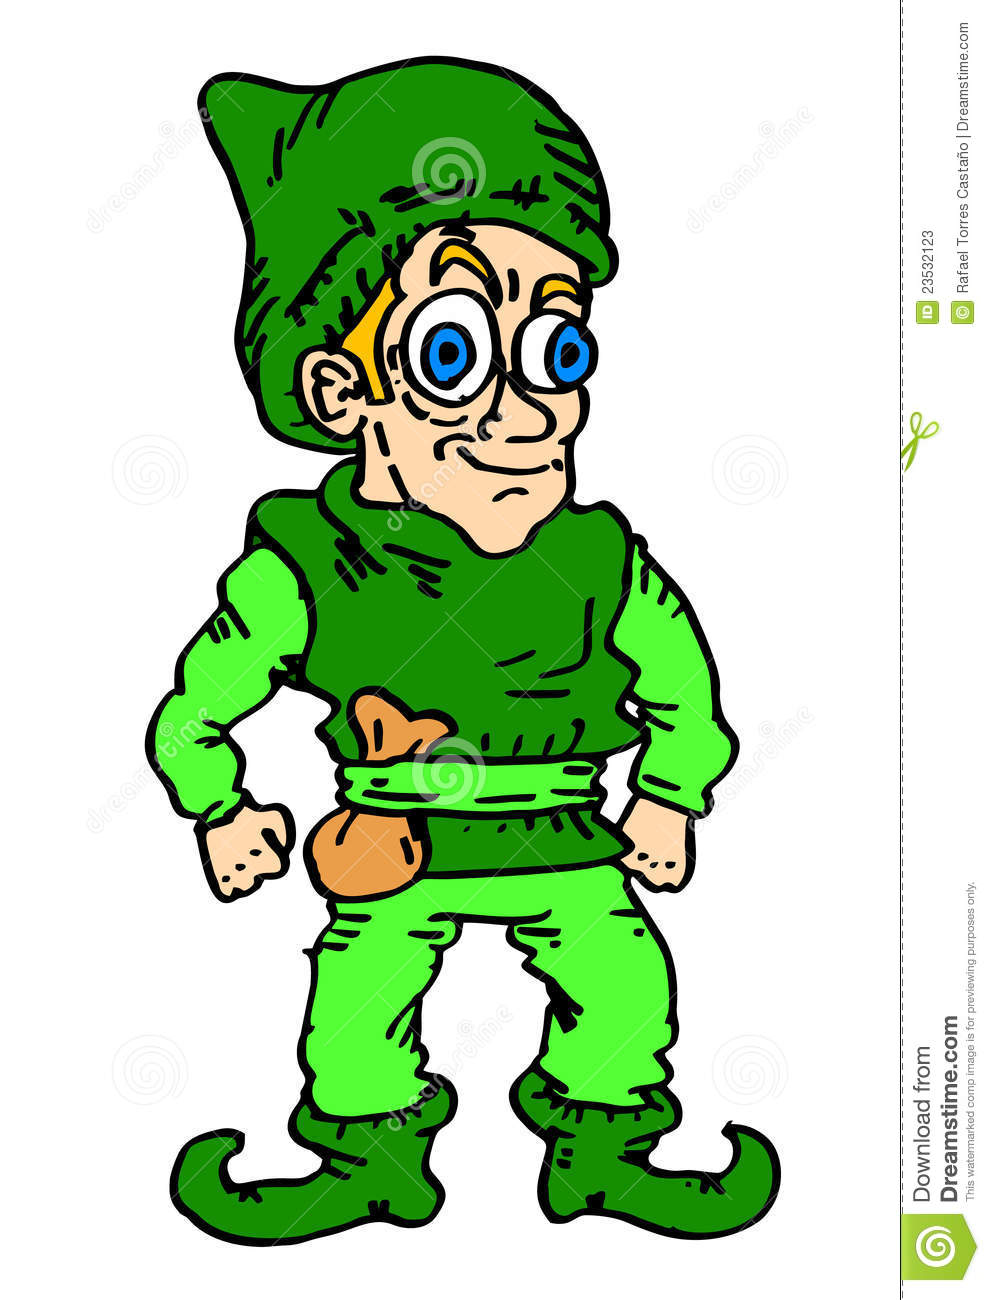 Elf Cartoon Stock Photos Image 23532123